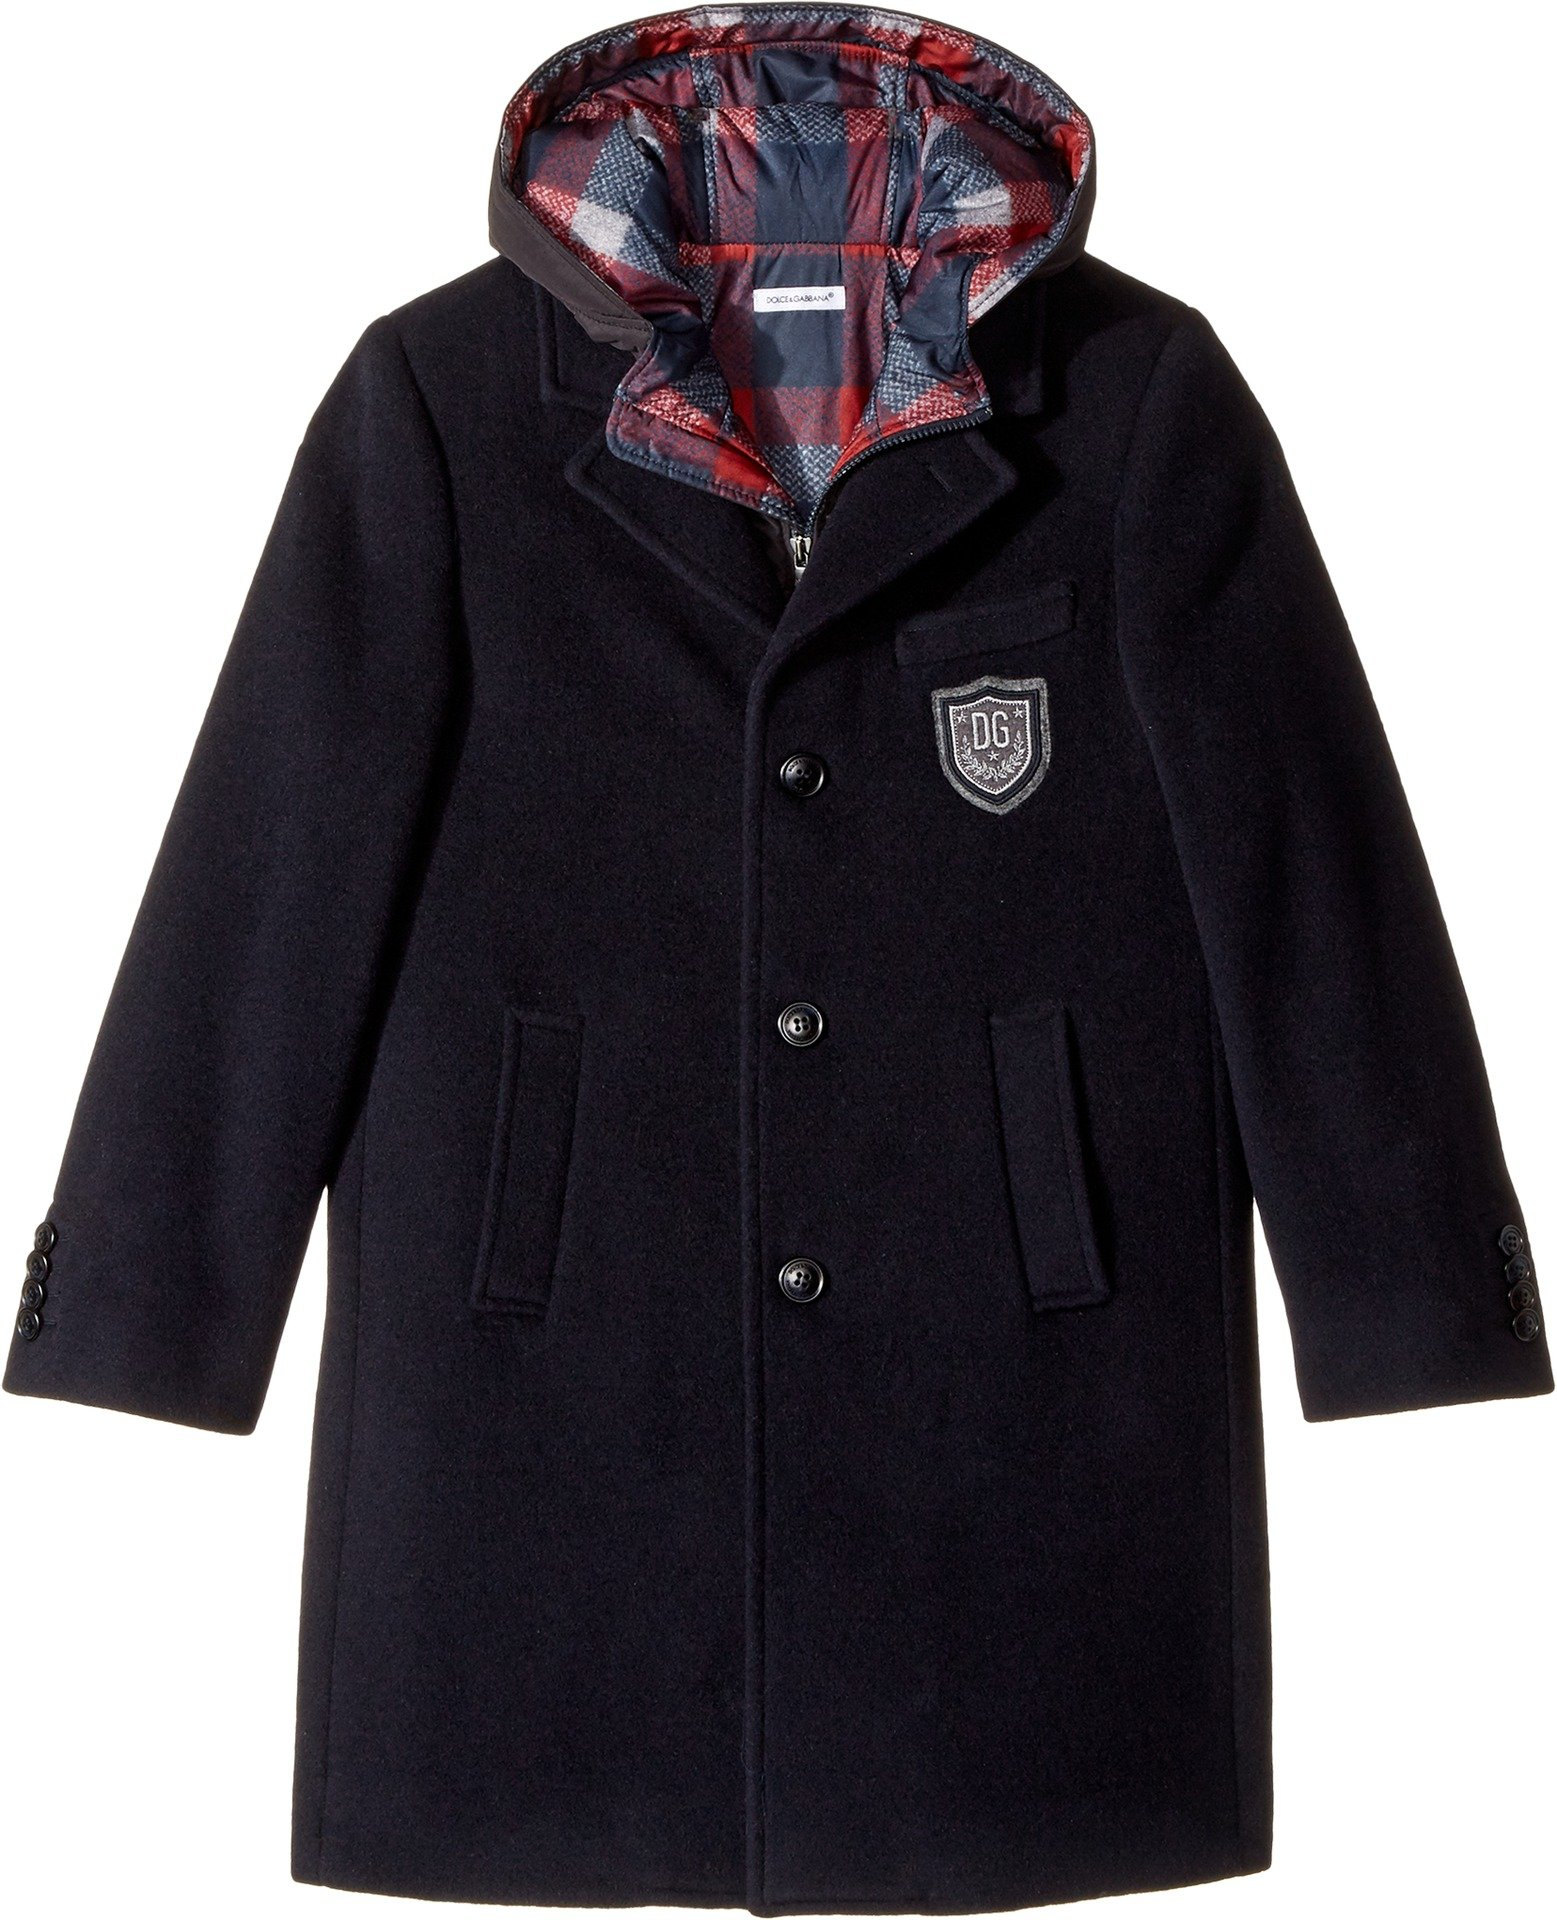 Dolce & Gabbana Kids  Boy's Back to School 2-in-1 Coat (Big Kids) Blue 12